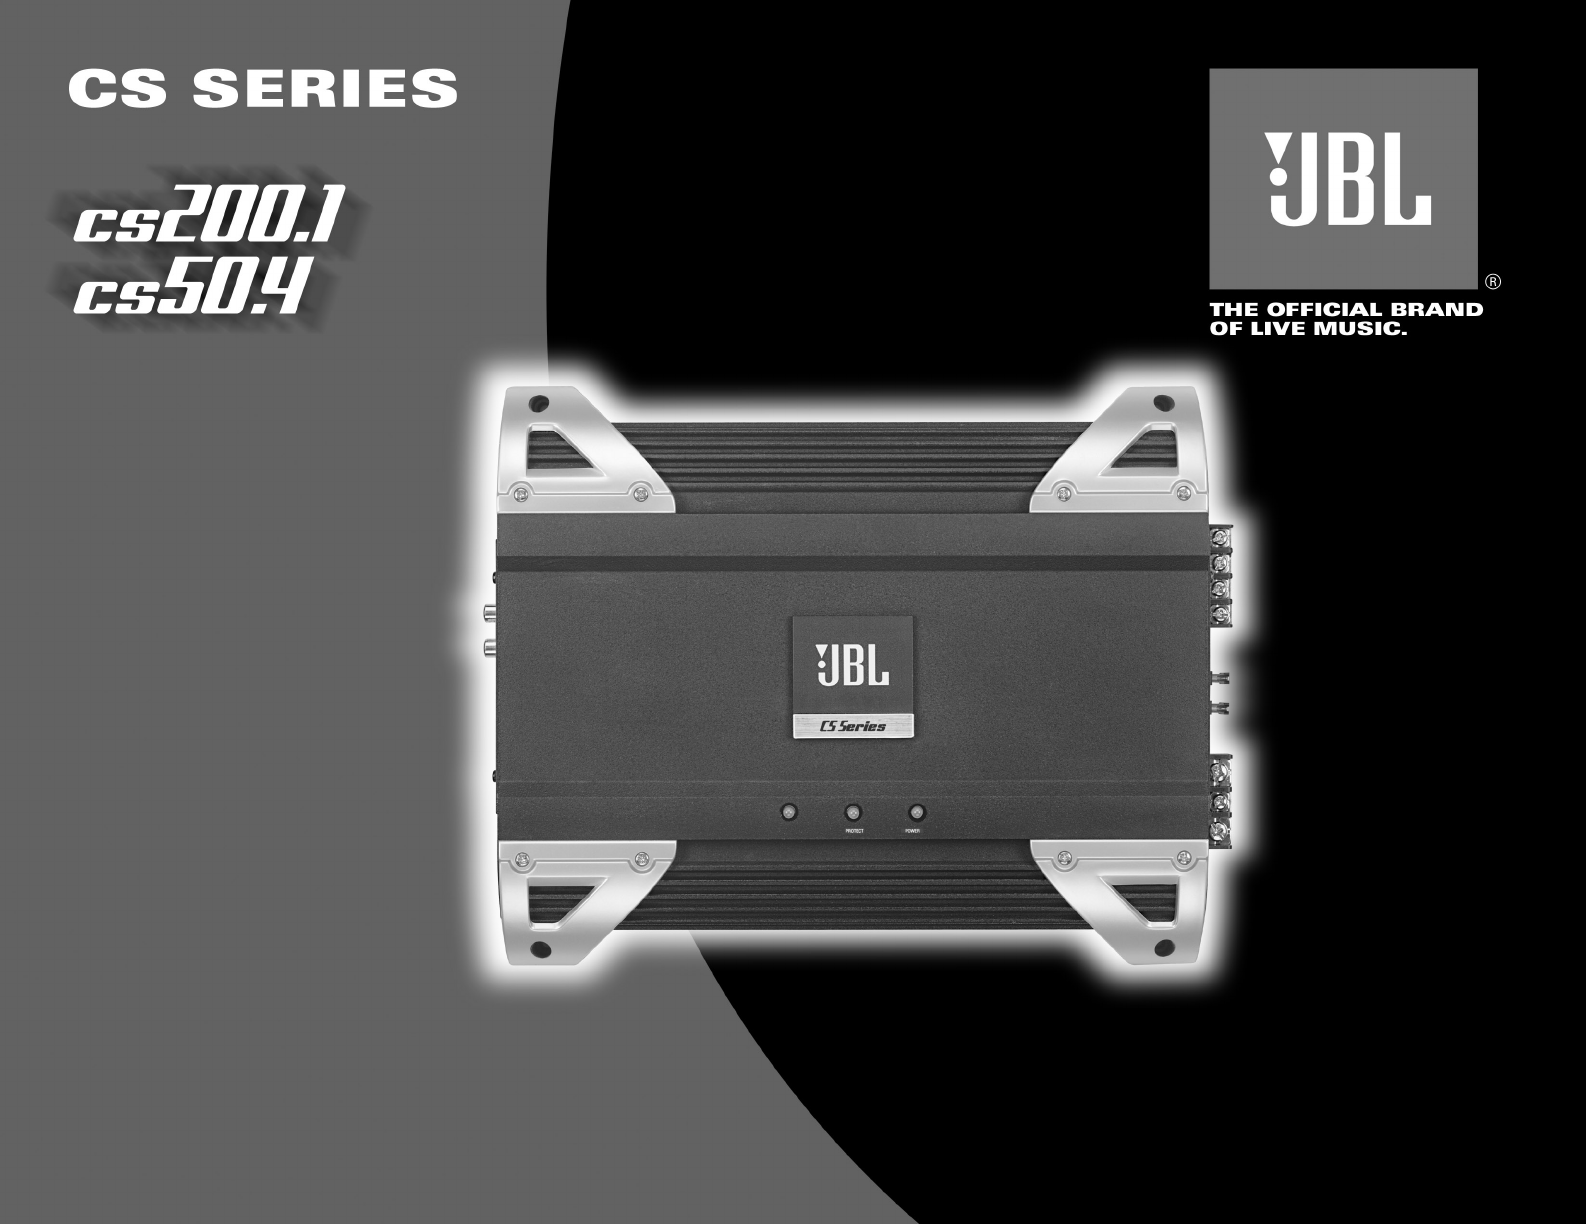 jbl car stereo system cs50 4 user guide manualsonline com rh caraudio manualsonline com JBL Marine Radios with iPod JBL Marine Radio Remote